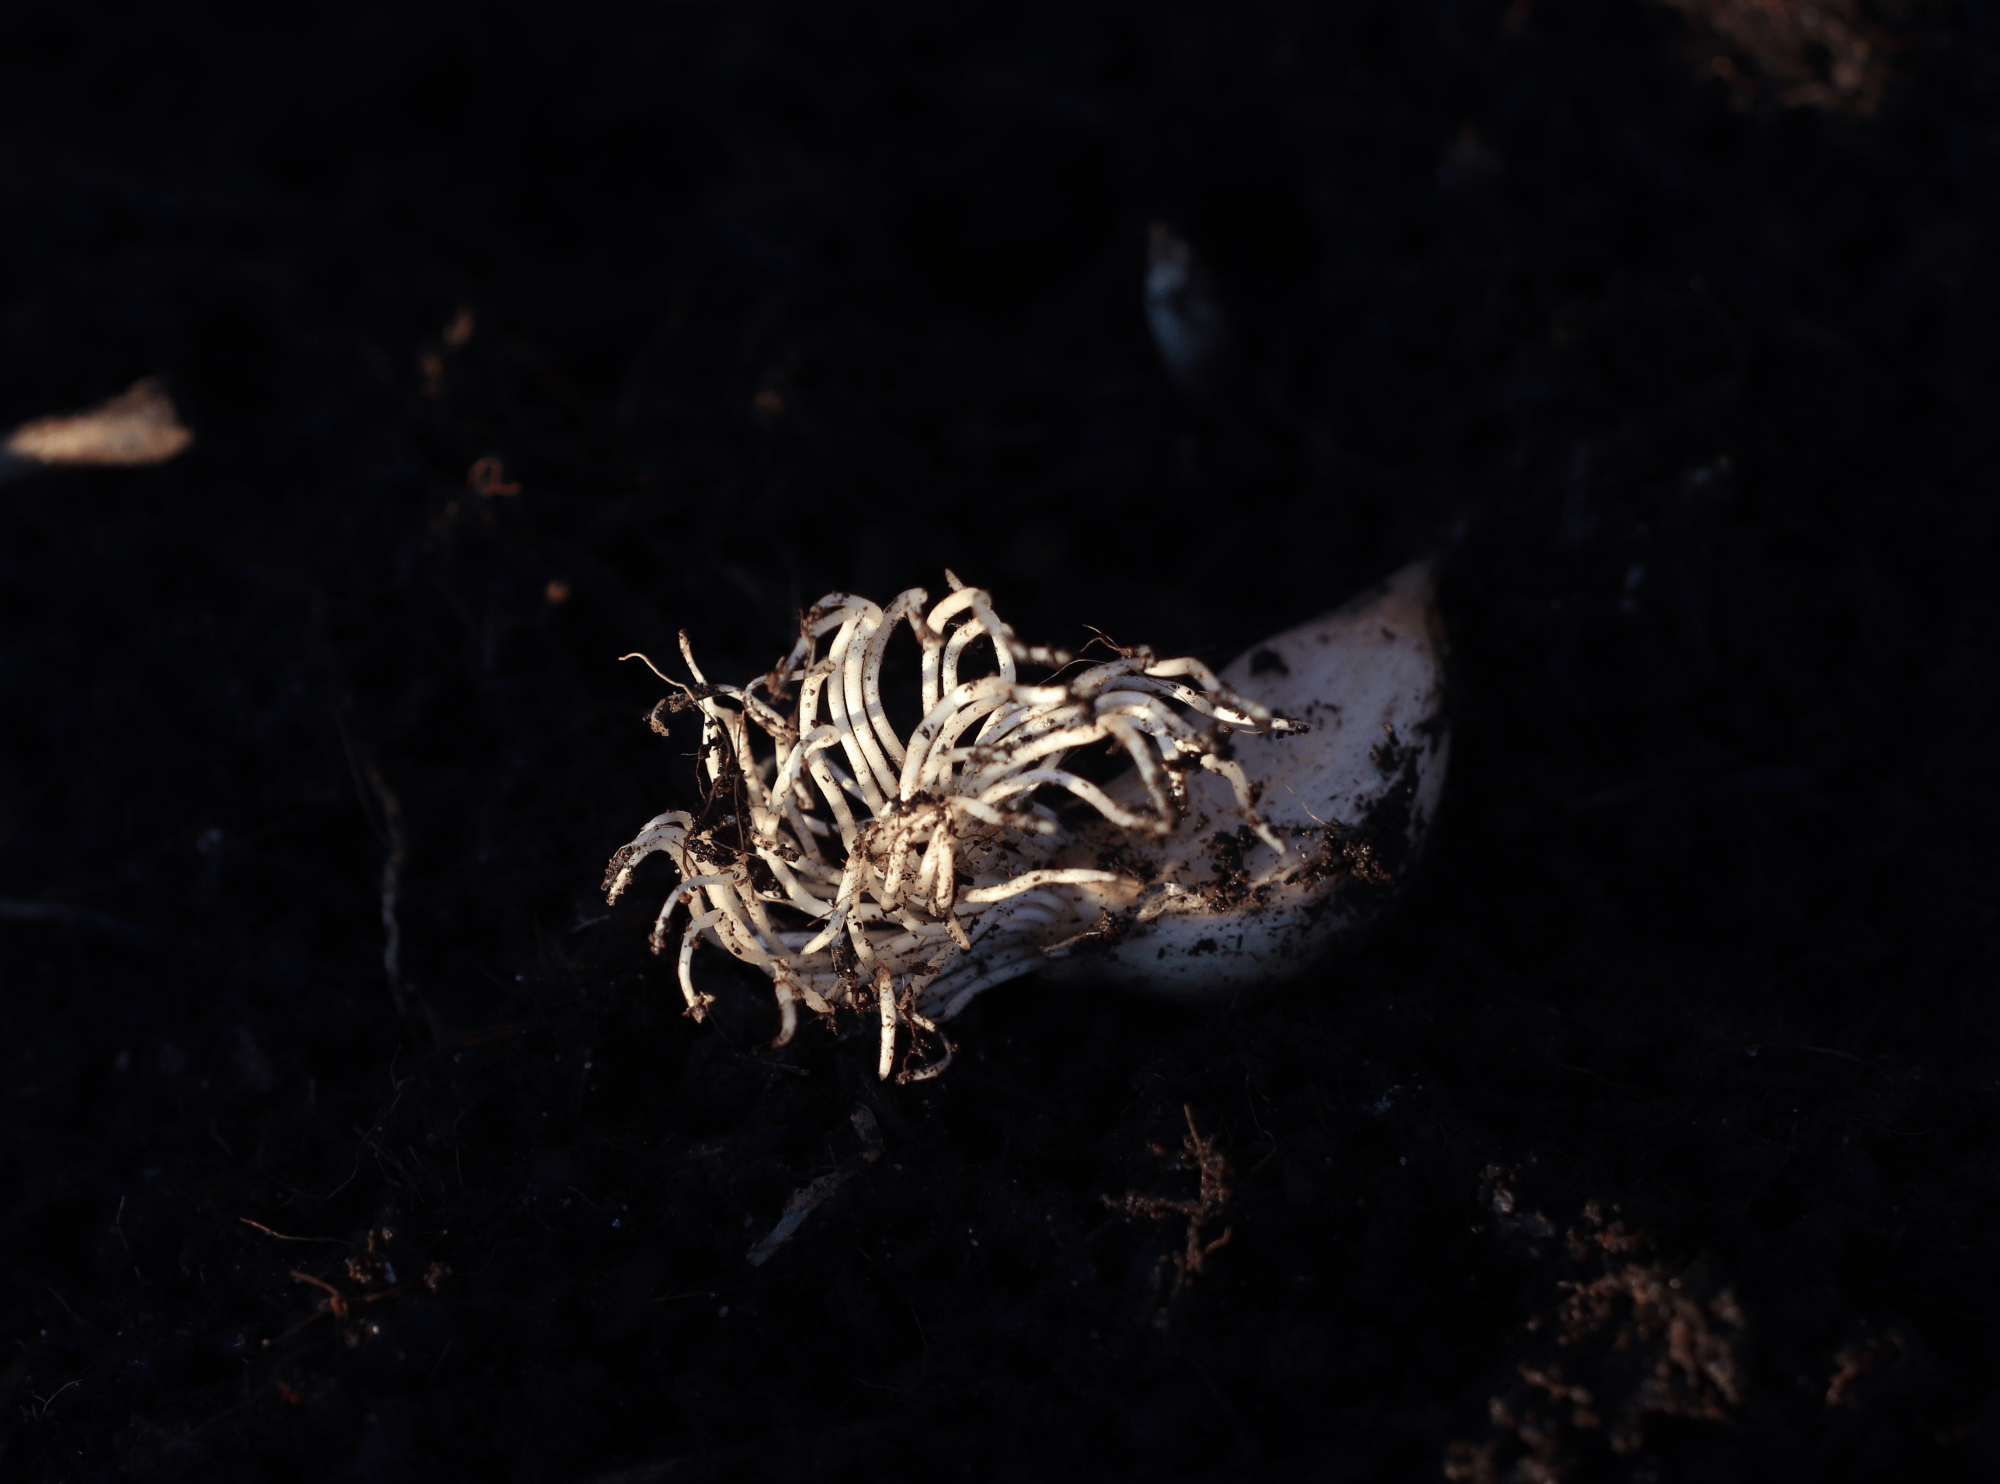 Garlic clove with long roots